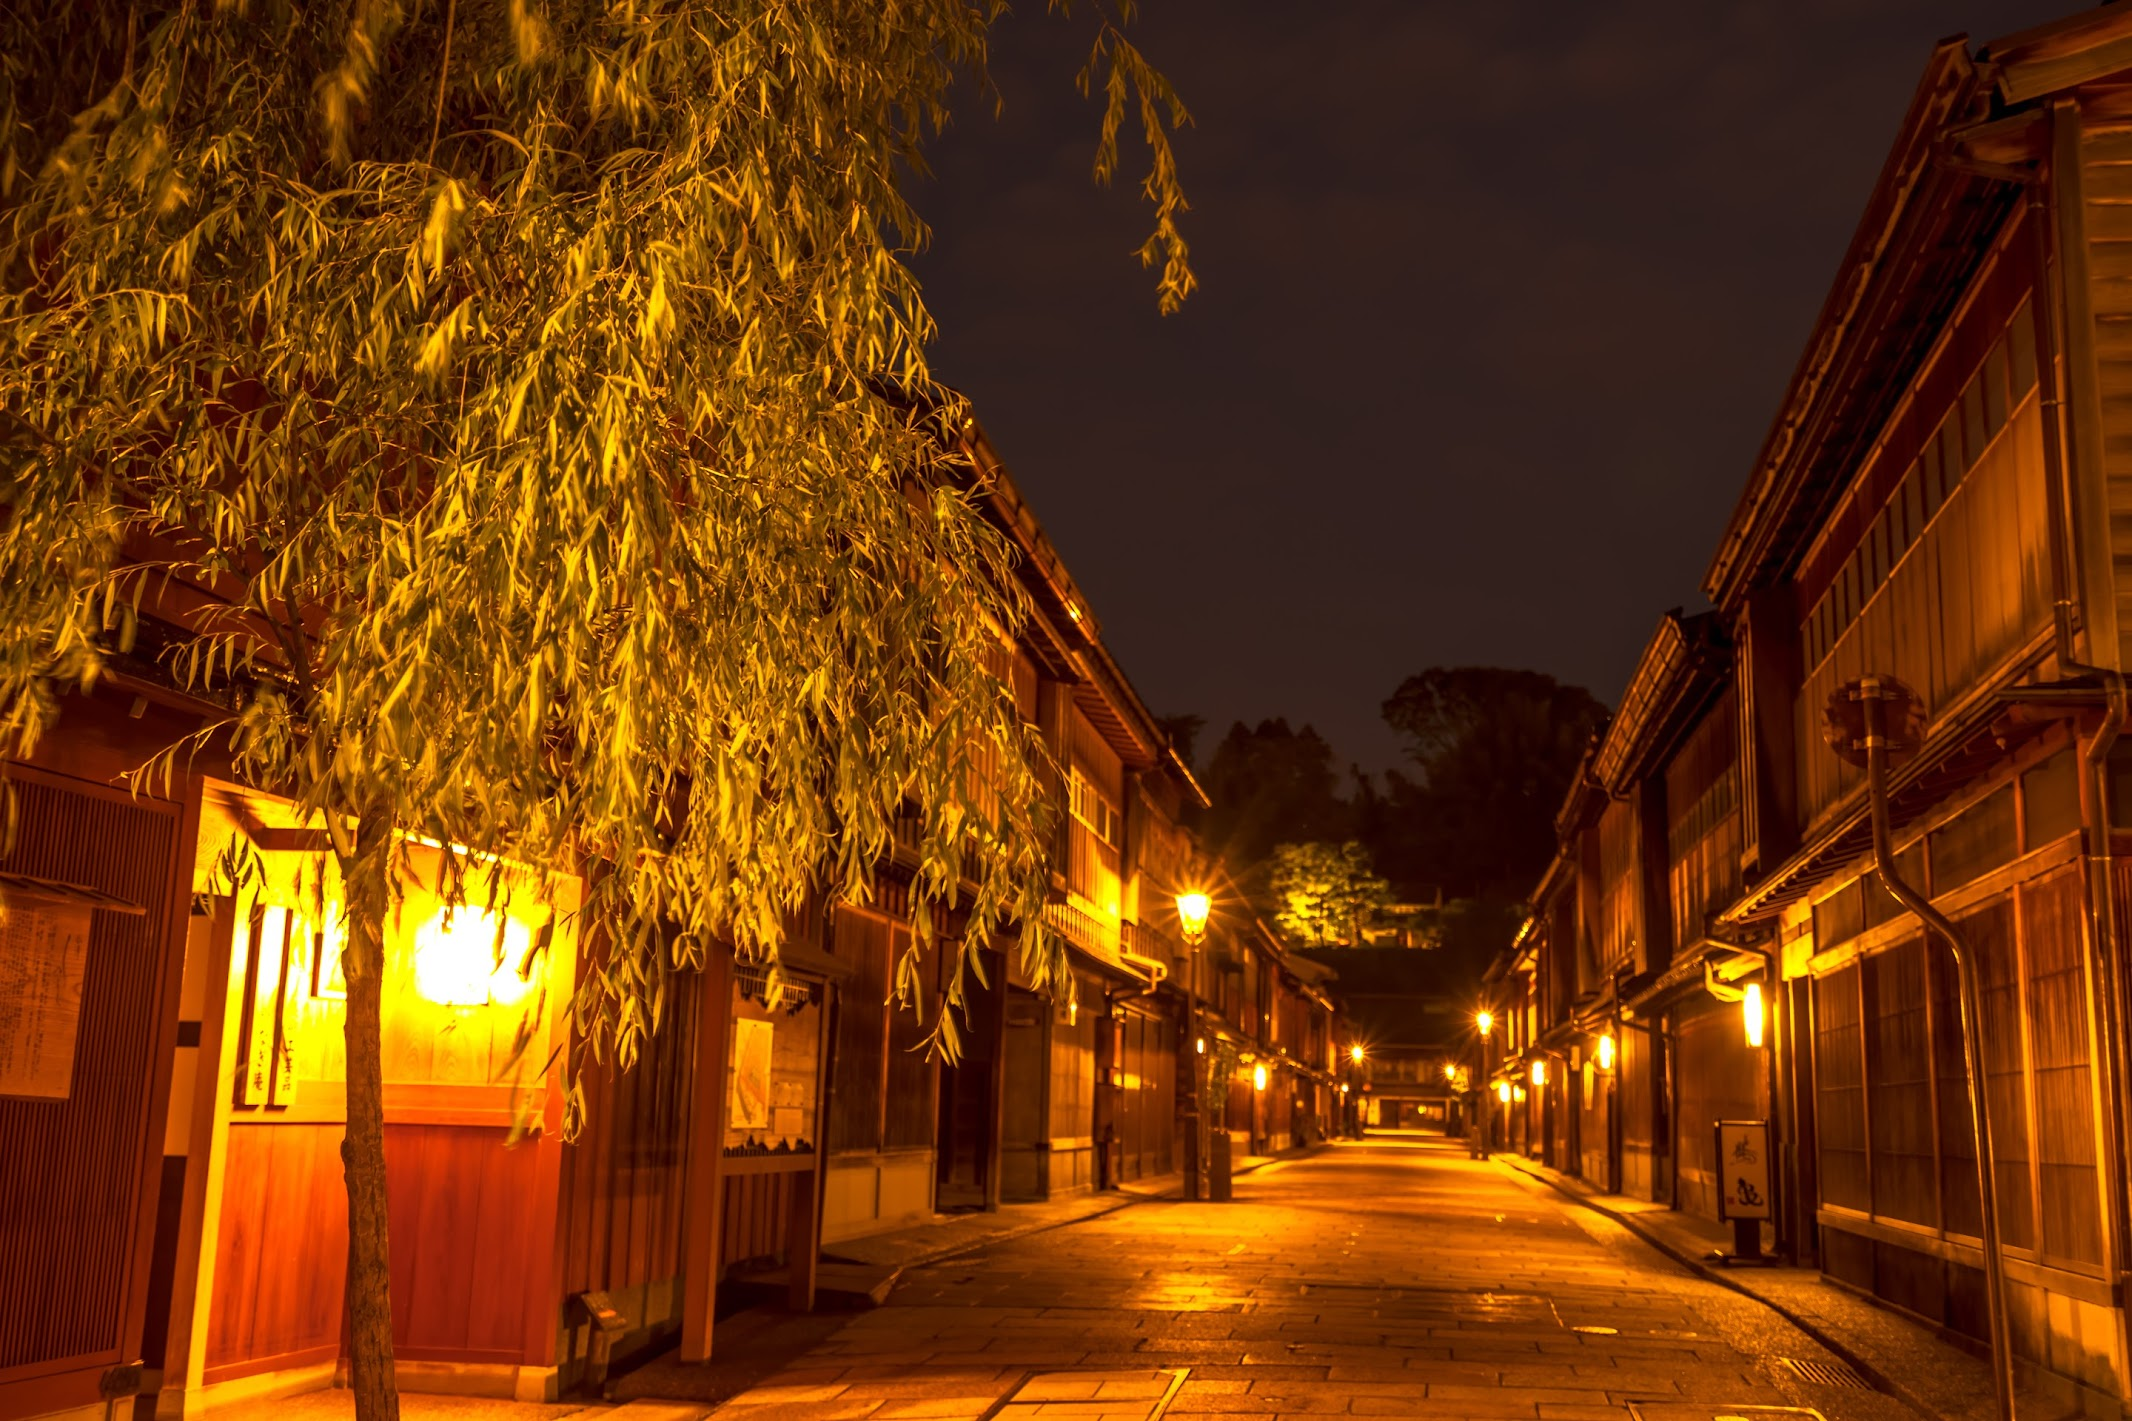 Kanazawa Higashi Chaya District Light-up4